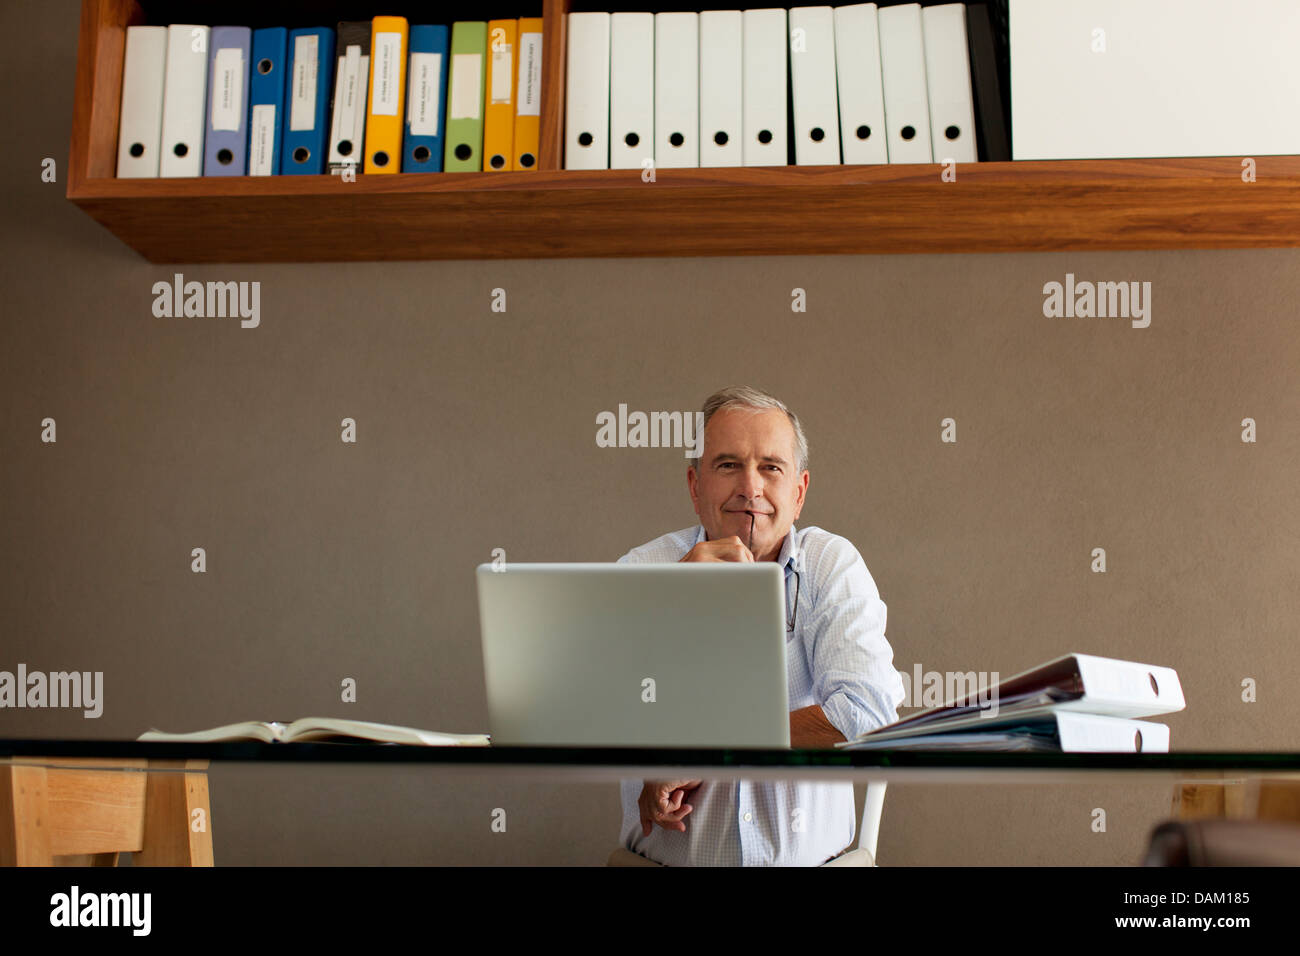 Older man sitting at desk Stock Photo